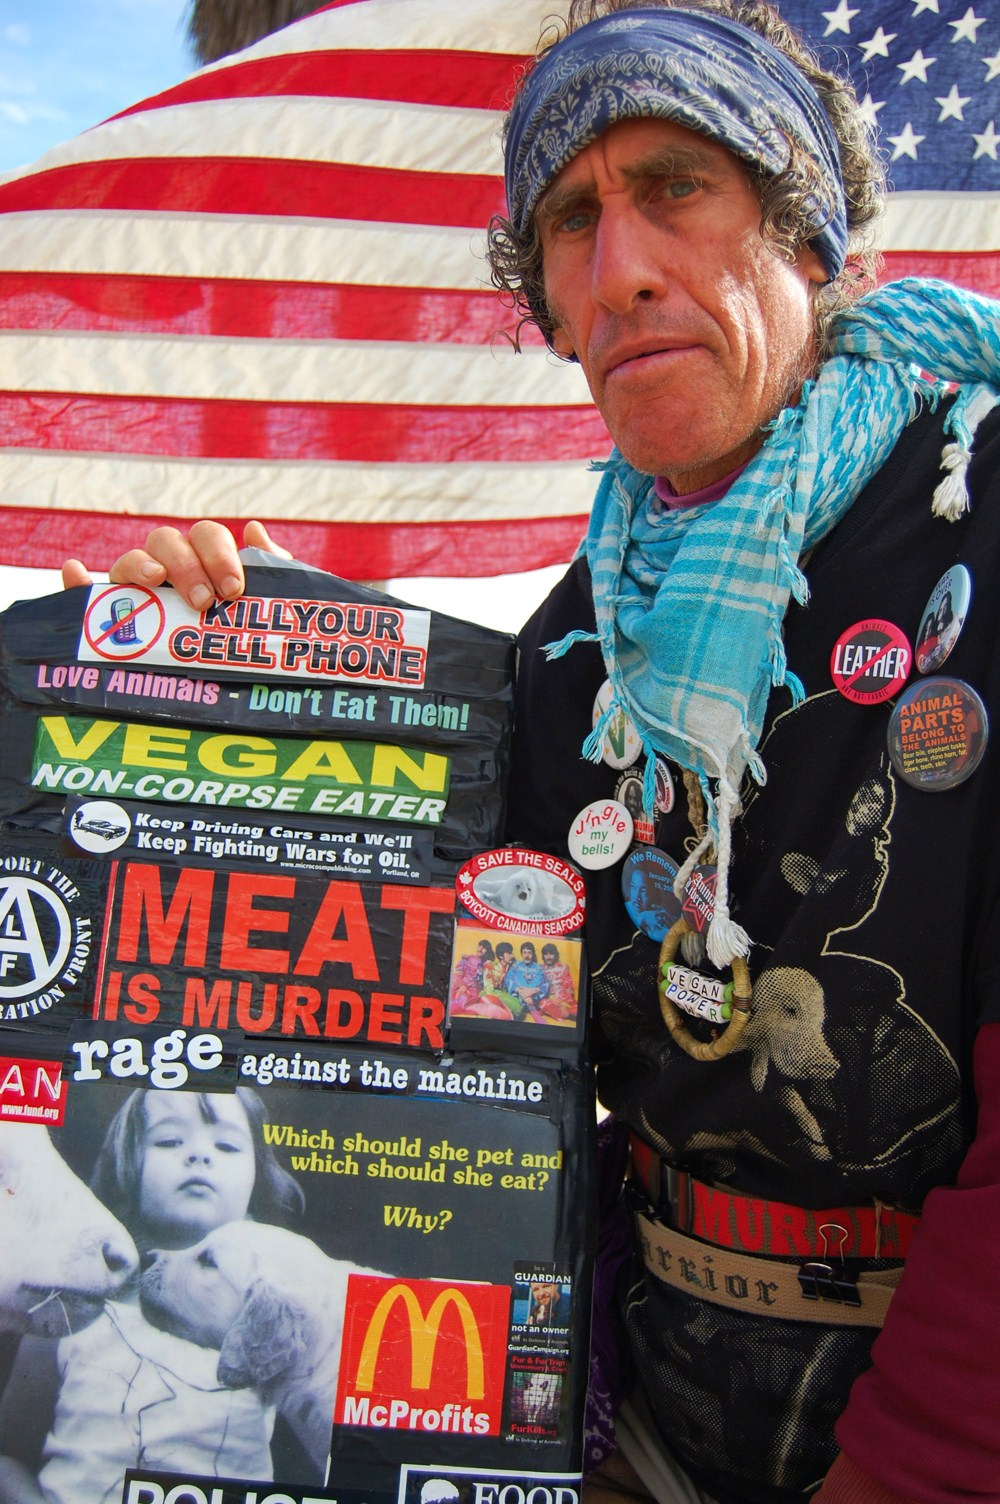 Meat is Murder. Photo selected for an exhibition, Latin American Visions of LA, by ADC Contemporary Art & Building Bridges International Art Exchange in Santa Monica, California.